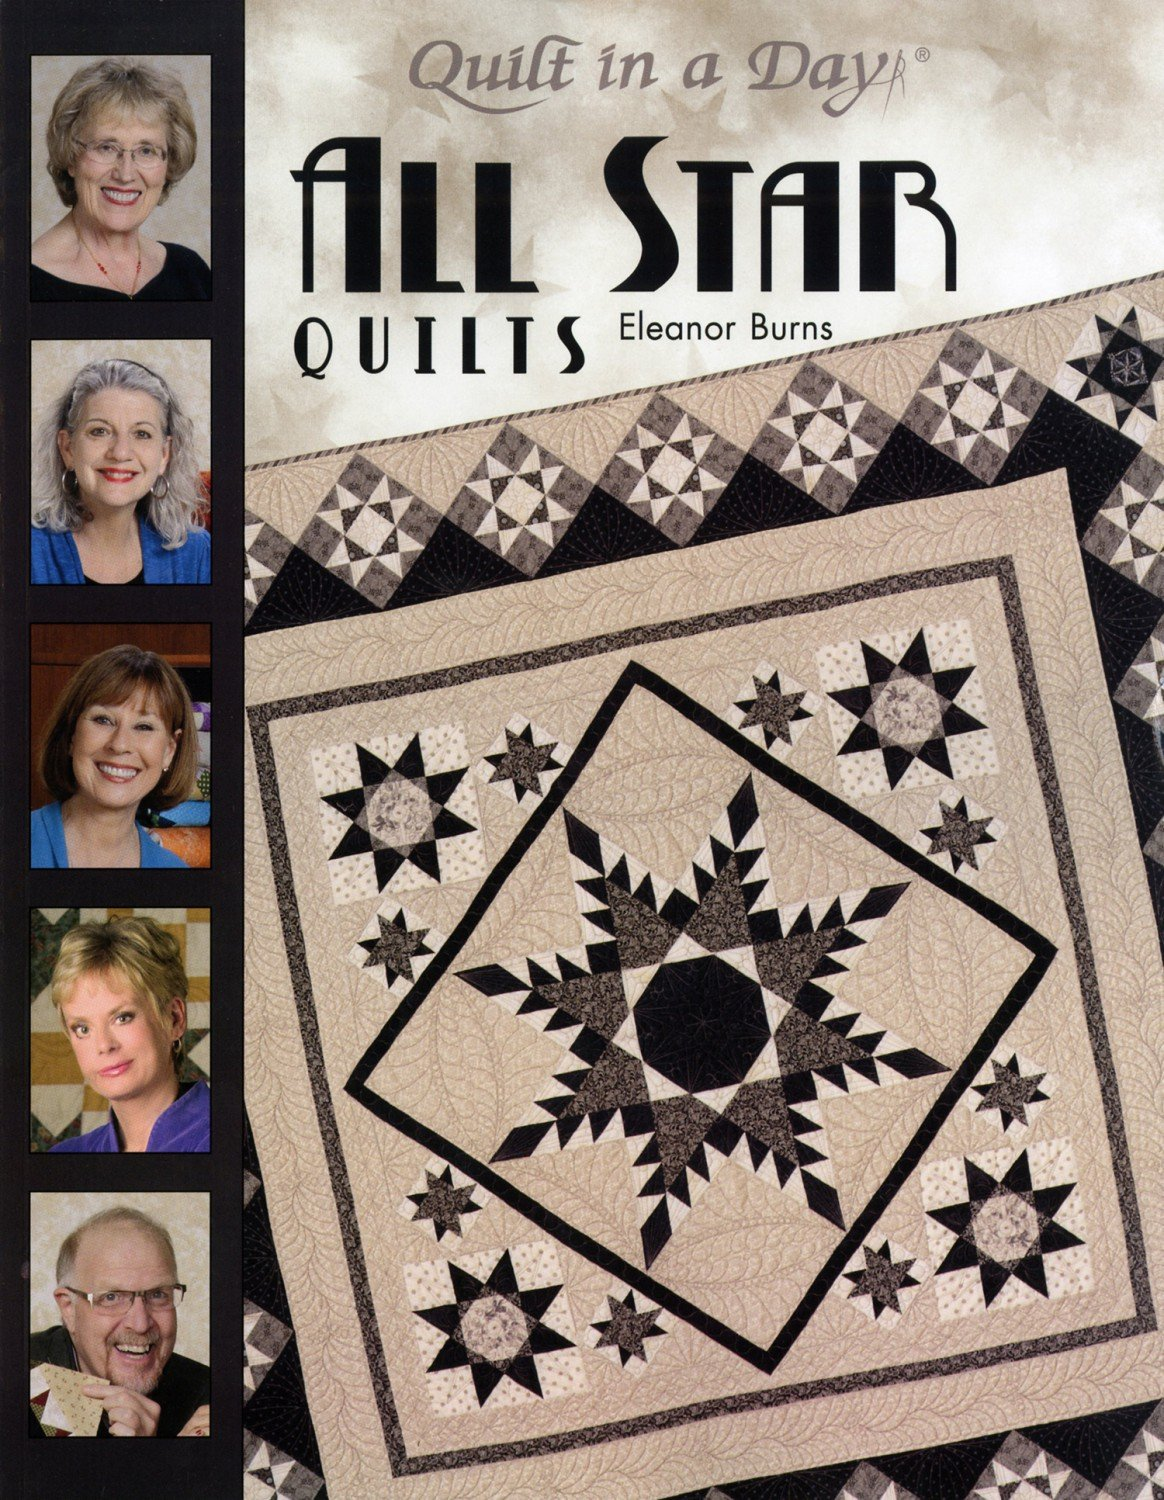 All Star Quilts from Quilt in a Day